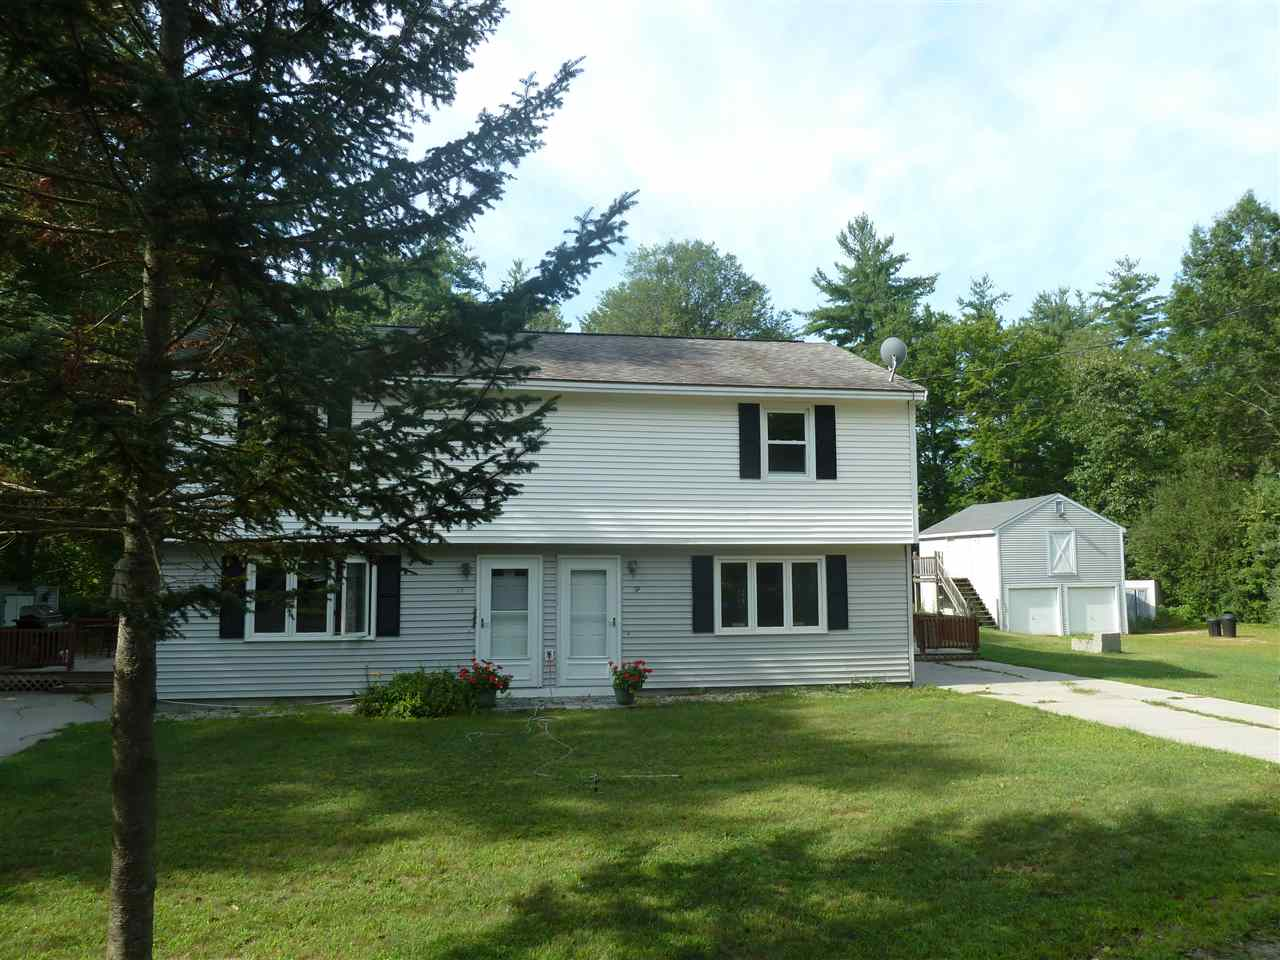 image of Allenstown NH  2 Unit Multi Family | sq.ft. 2120